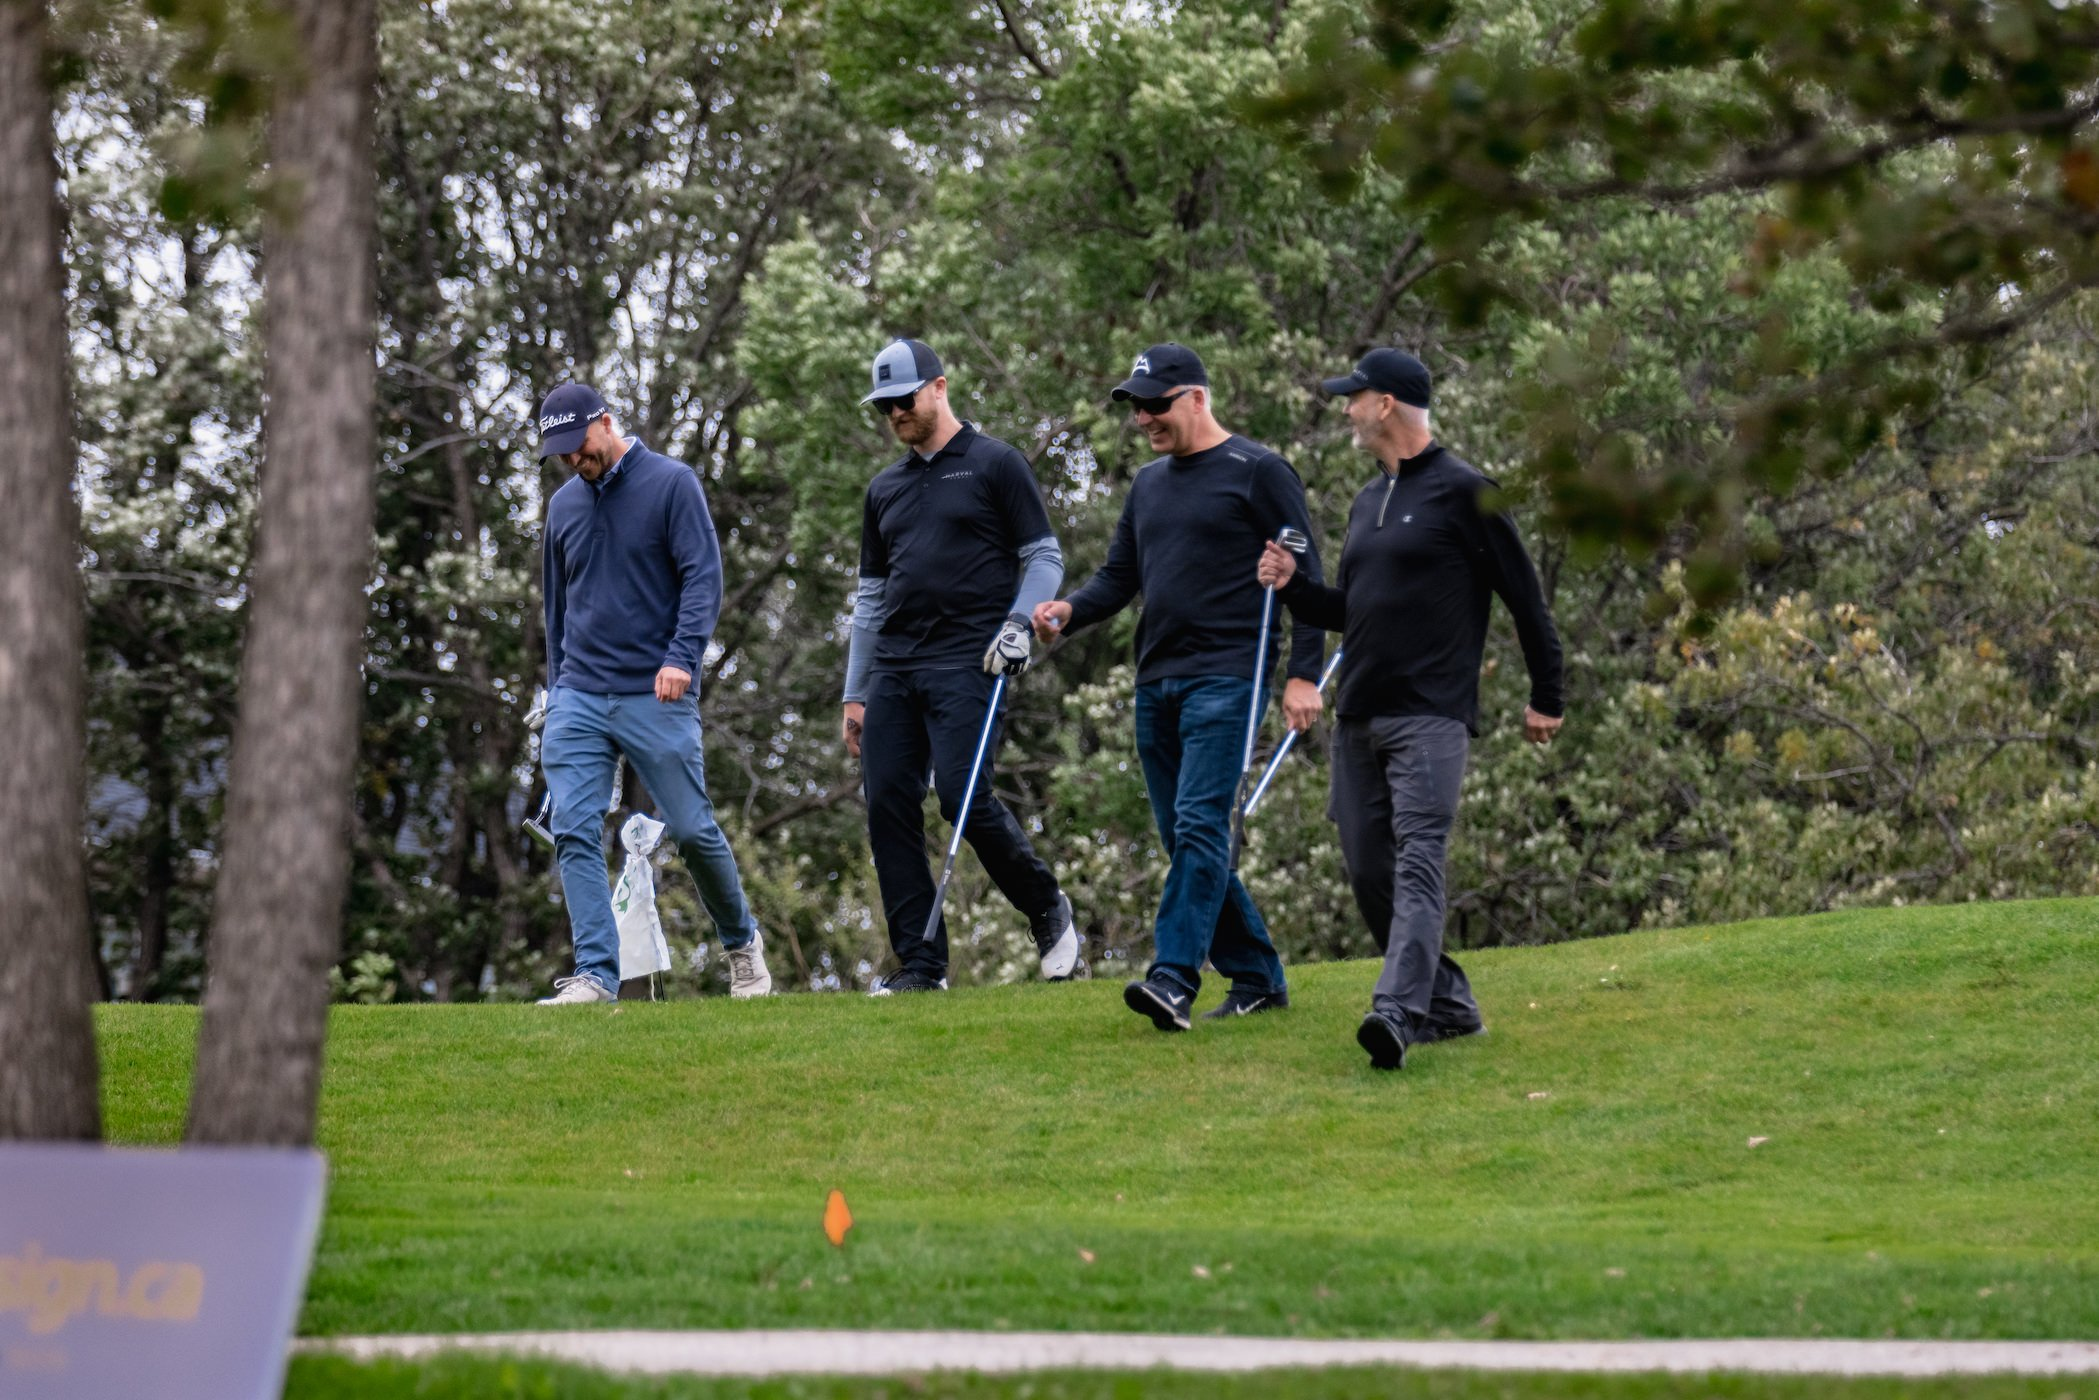 group of men smiling as they walk down the golf course